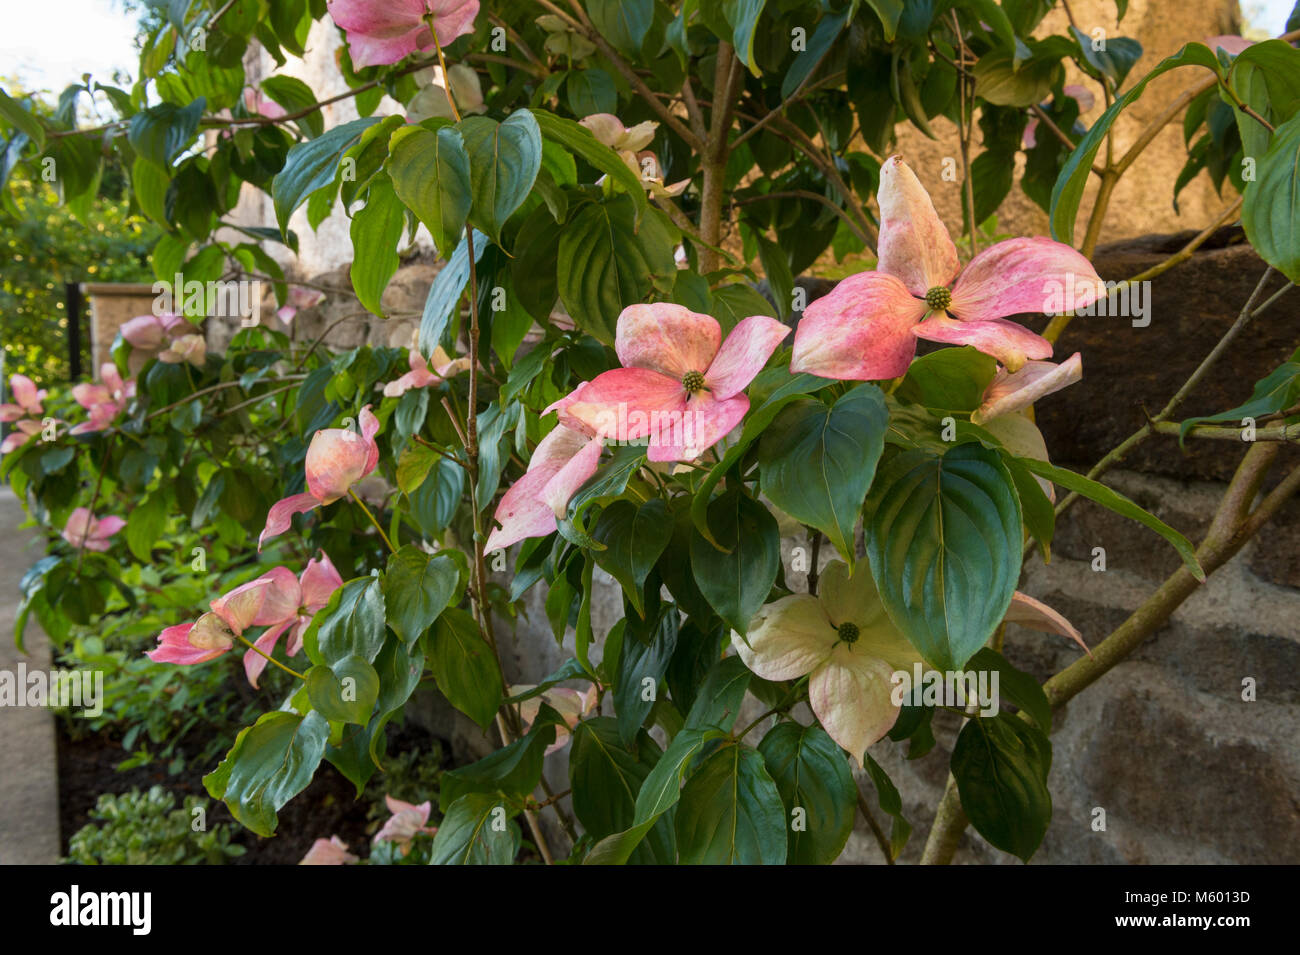 Close Up Of Pink Flowering Bracts On Dogwood Tree With Mixed Border